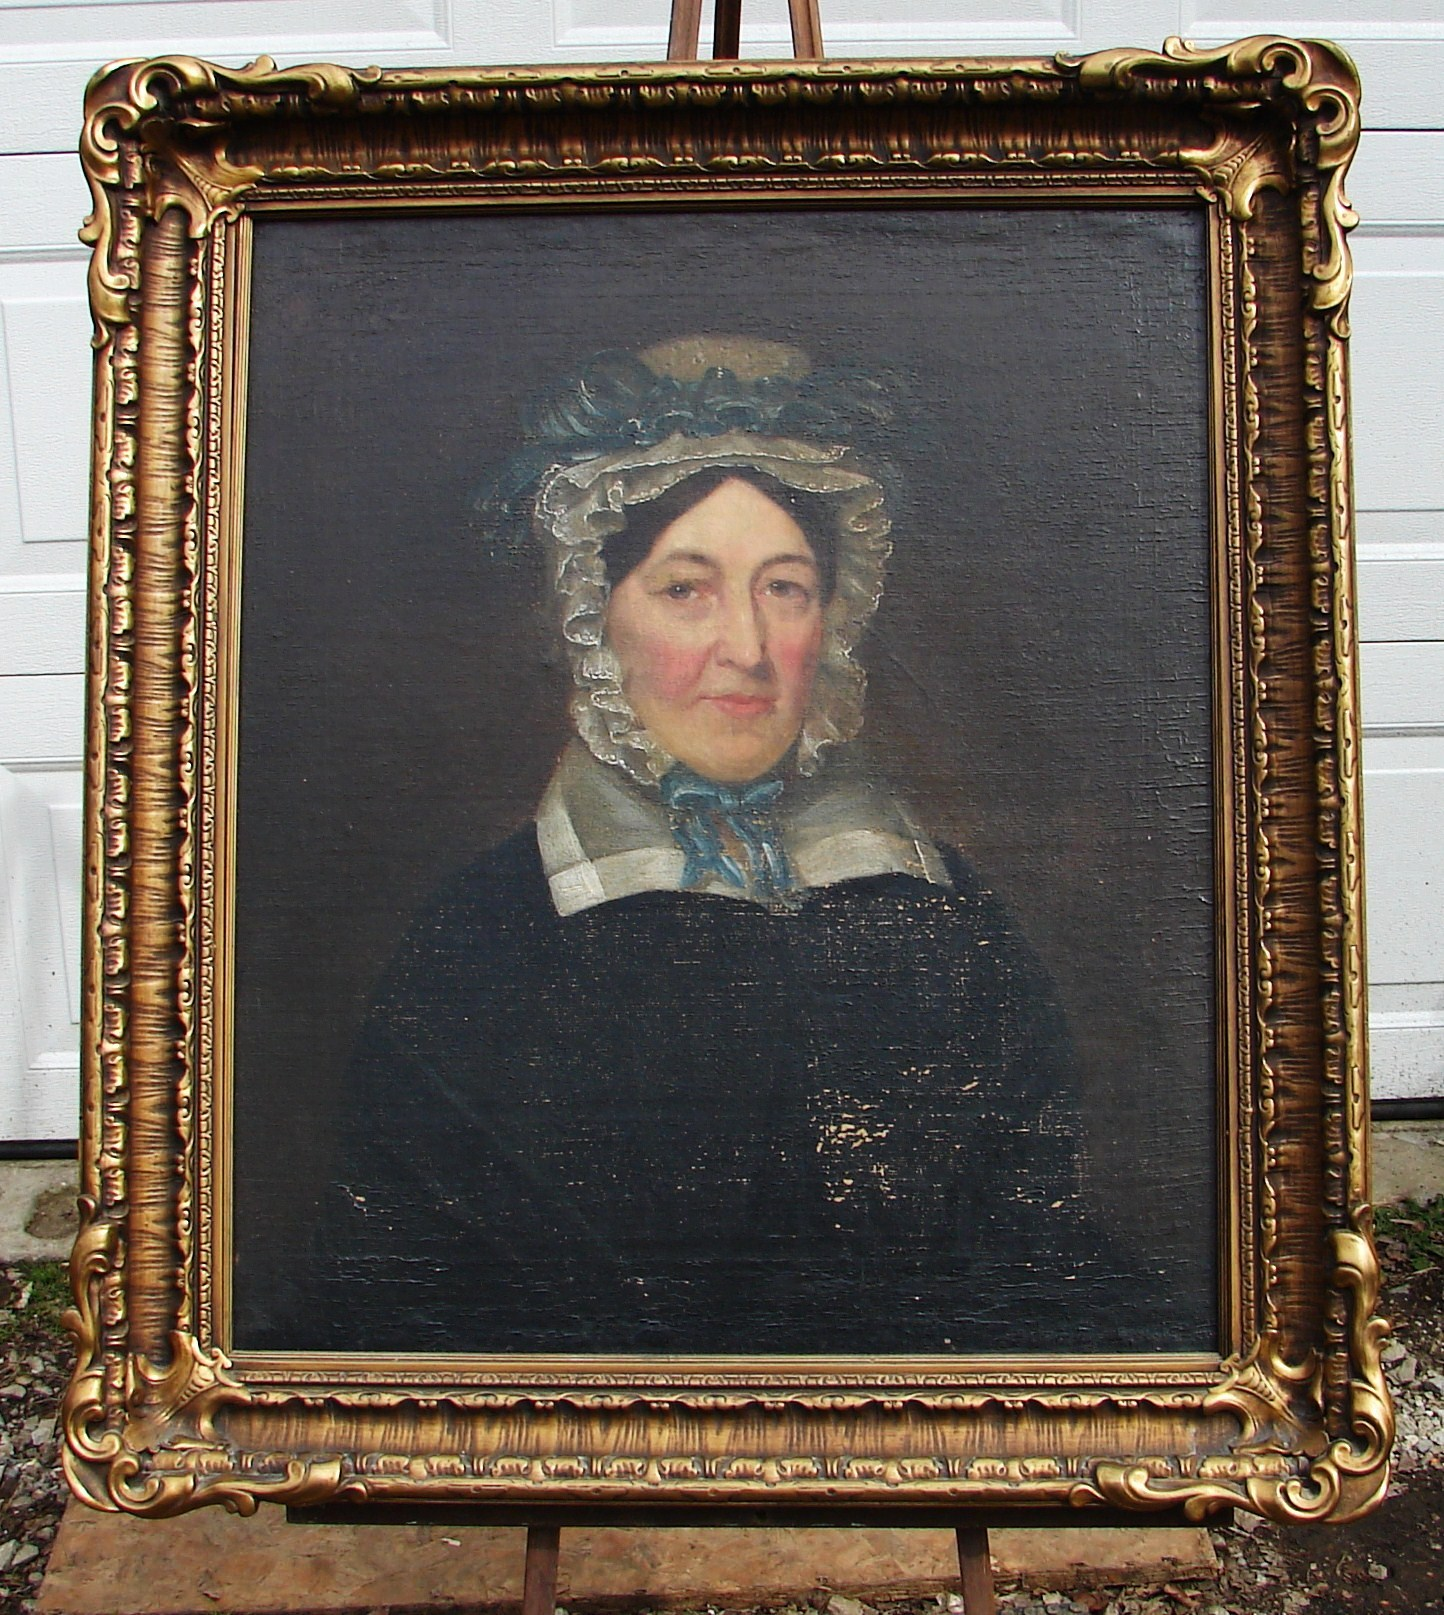 Antique Framed Oil On Canvas Portrait Of A Woman Painting